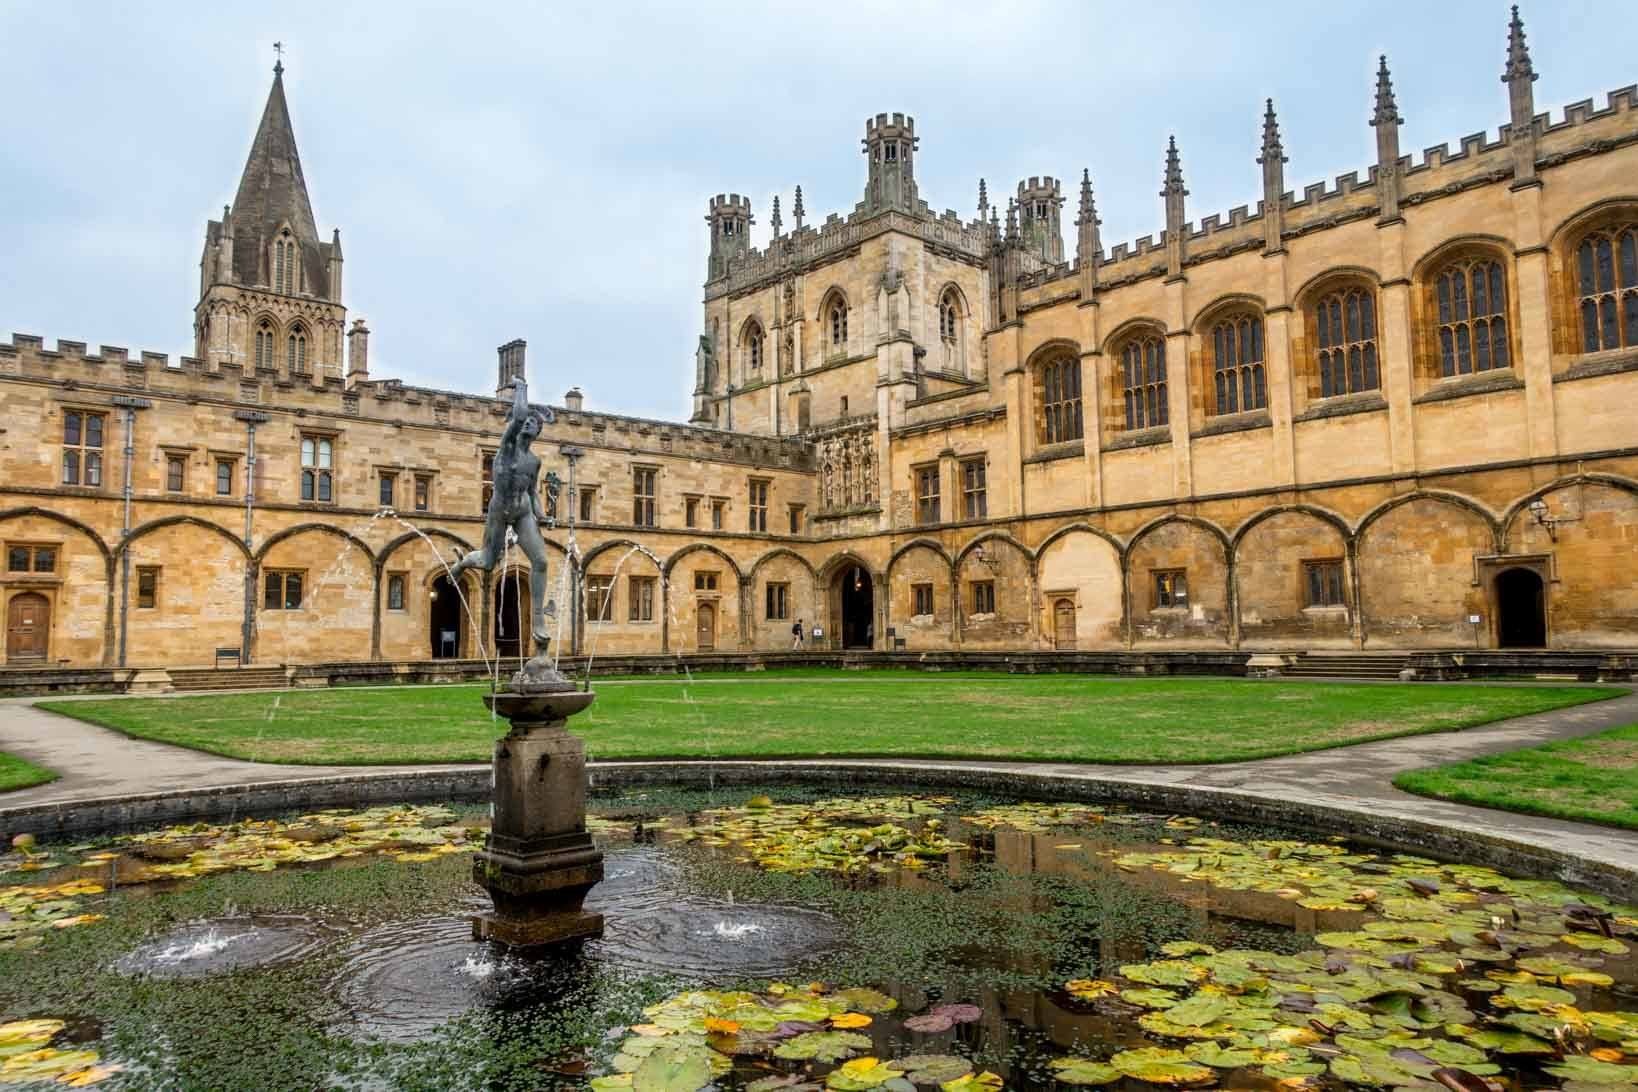 Seeing Christ Church is one of the highlights of visiting Oxford England